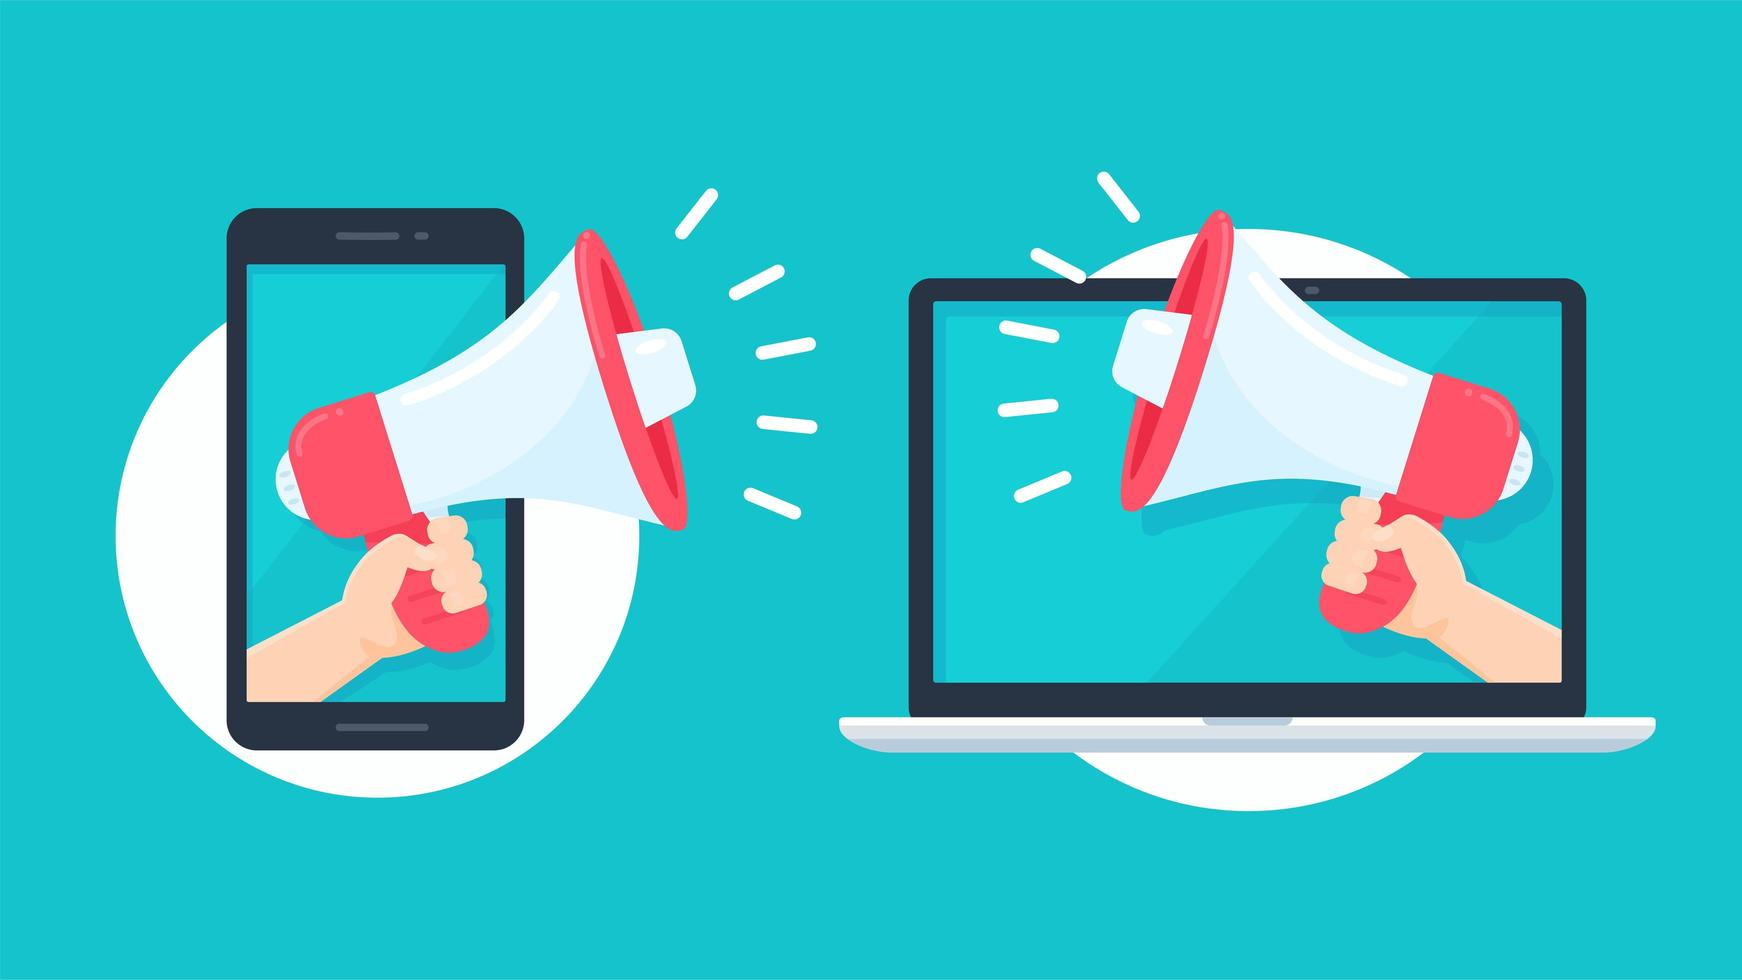 Megaphone reaching out from smartphone and laptop vector